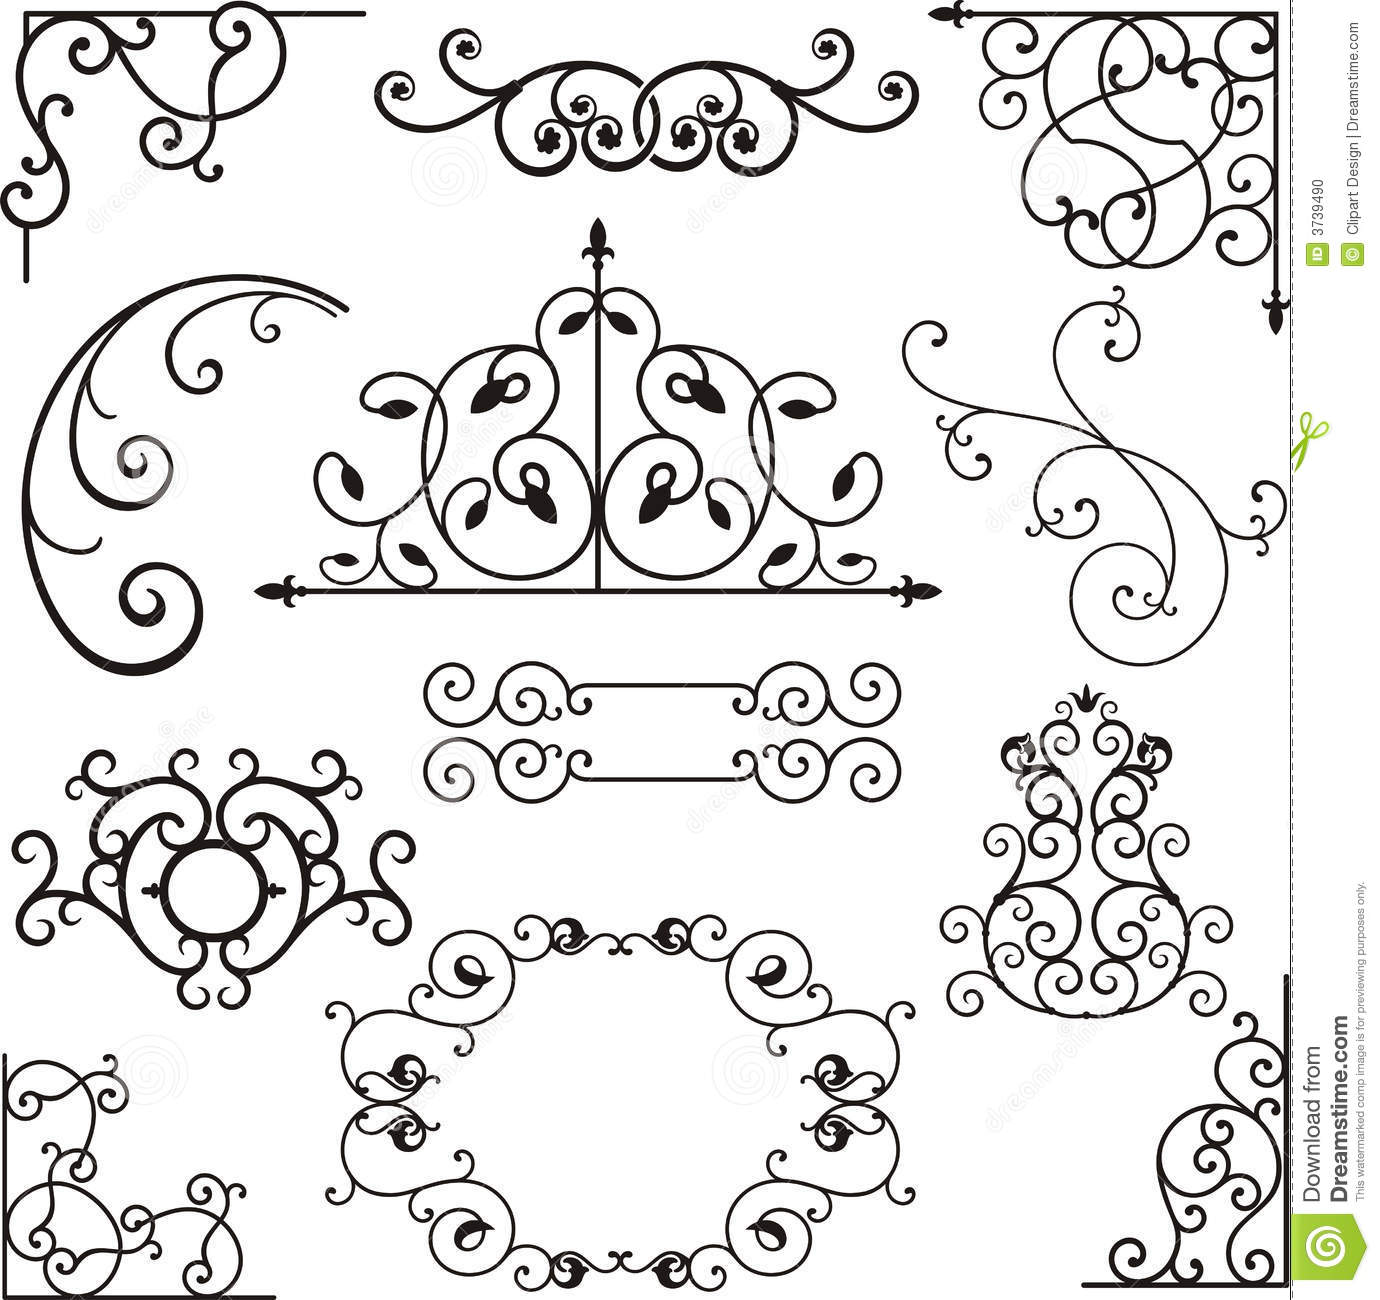 Wrough iron ornaments stock vector. Image of floral, fence